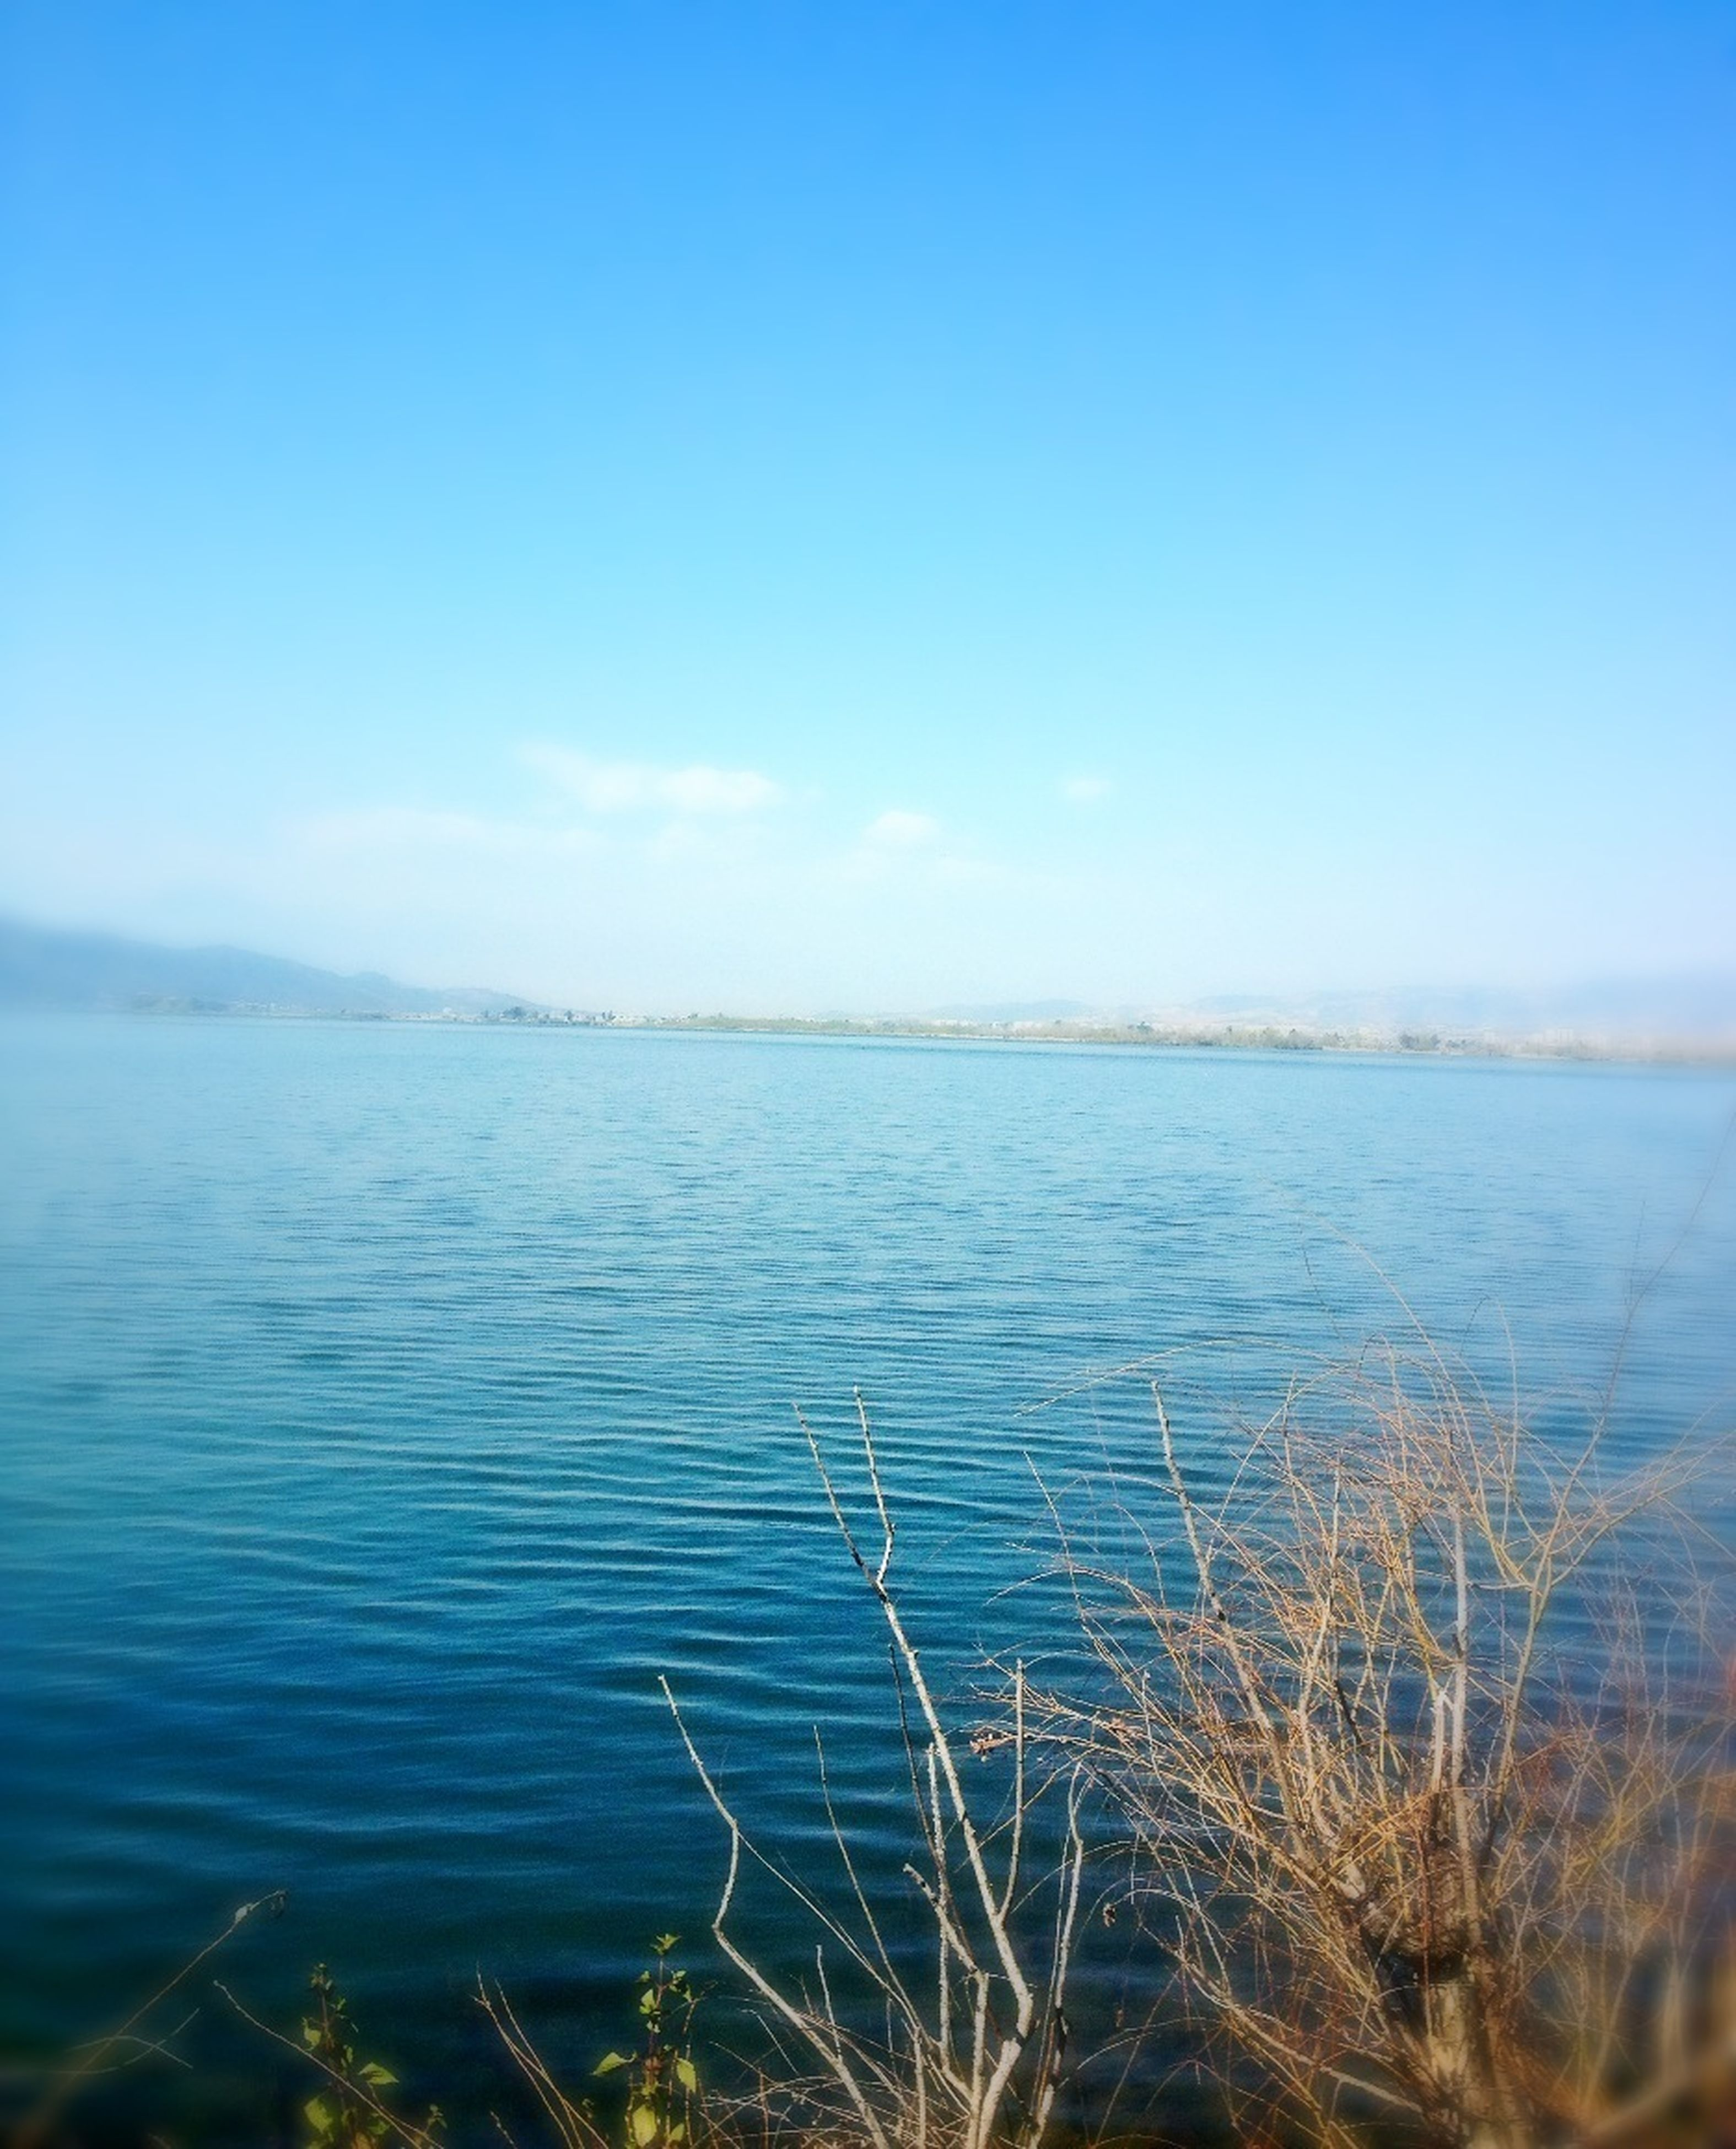 water, tranquil scene, blue, tranquility, scenics, clear sky, beauty in nature, nature, copy space, lake, sea, grass, idyllic, plant, sky, rippled, outdoors, no people, day, calm